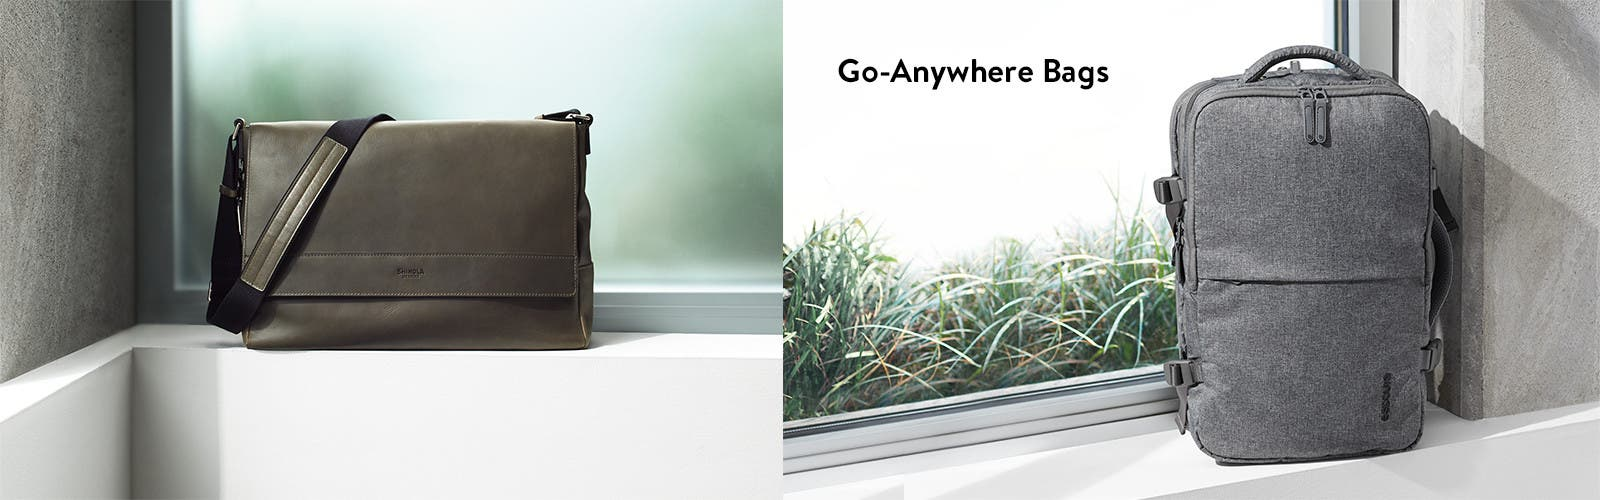 Go-anywhere bags.